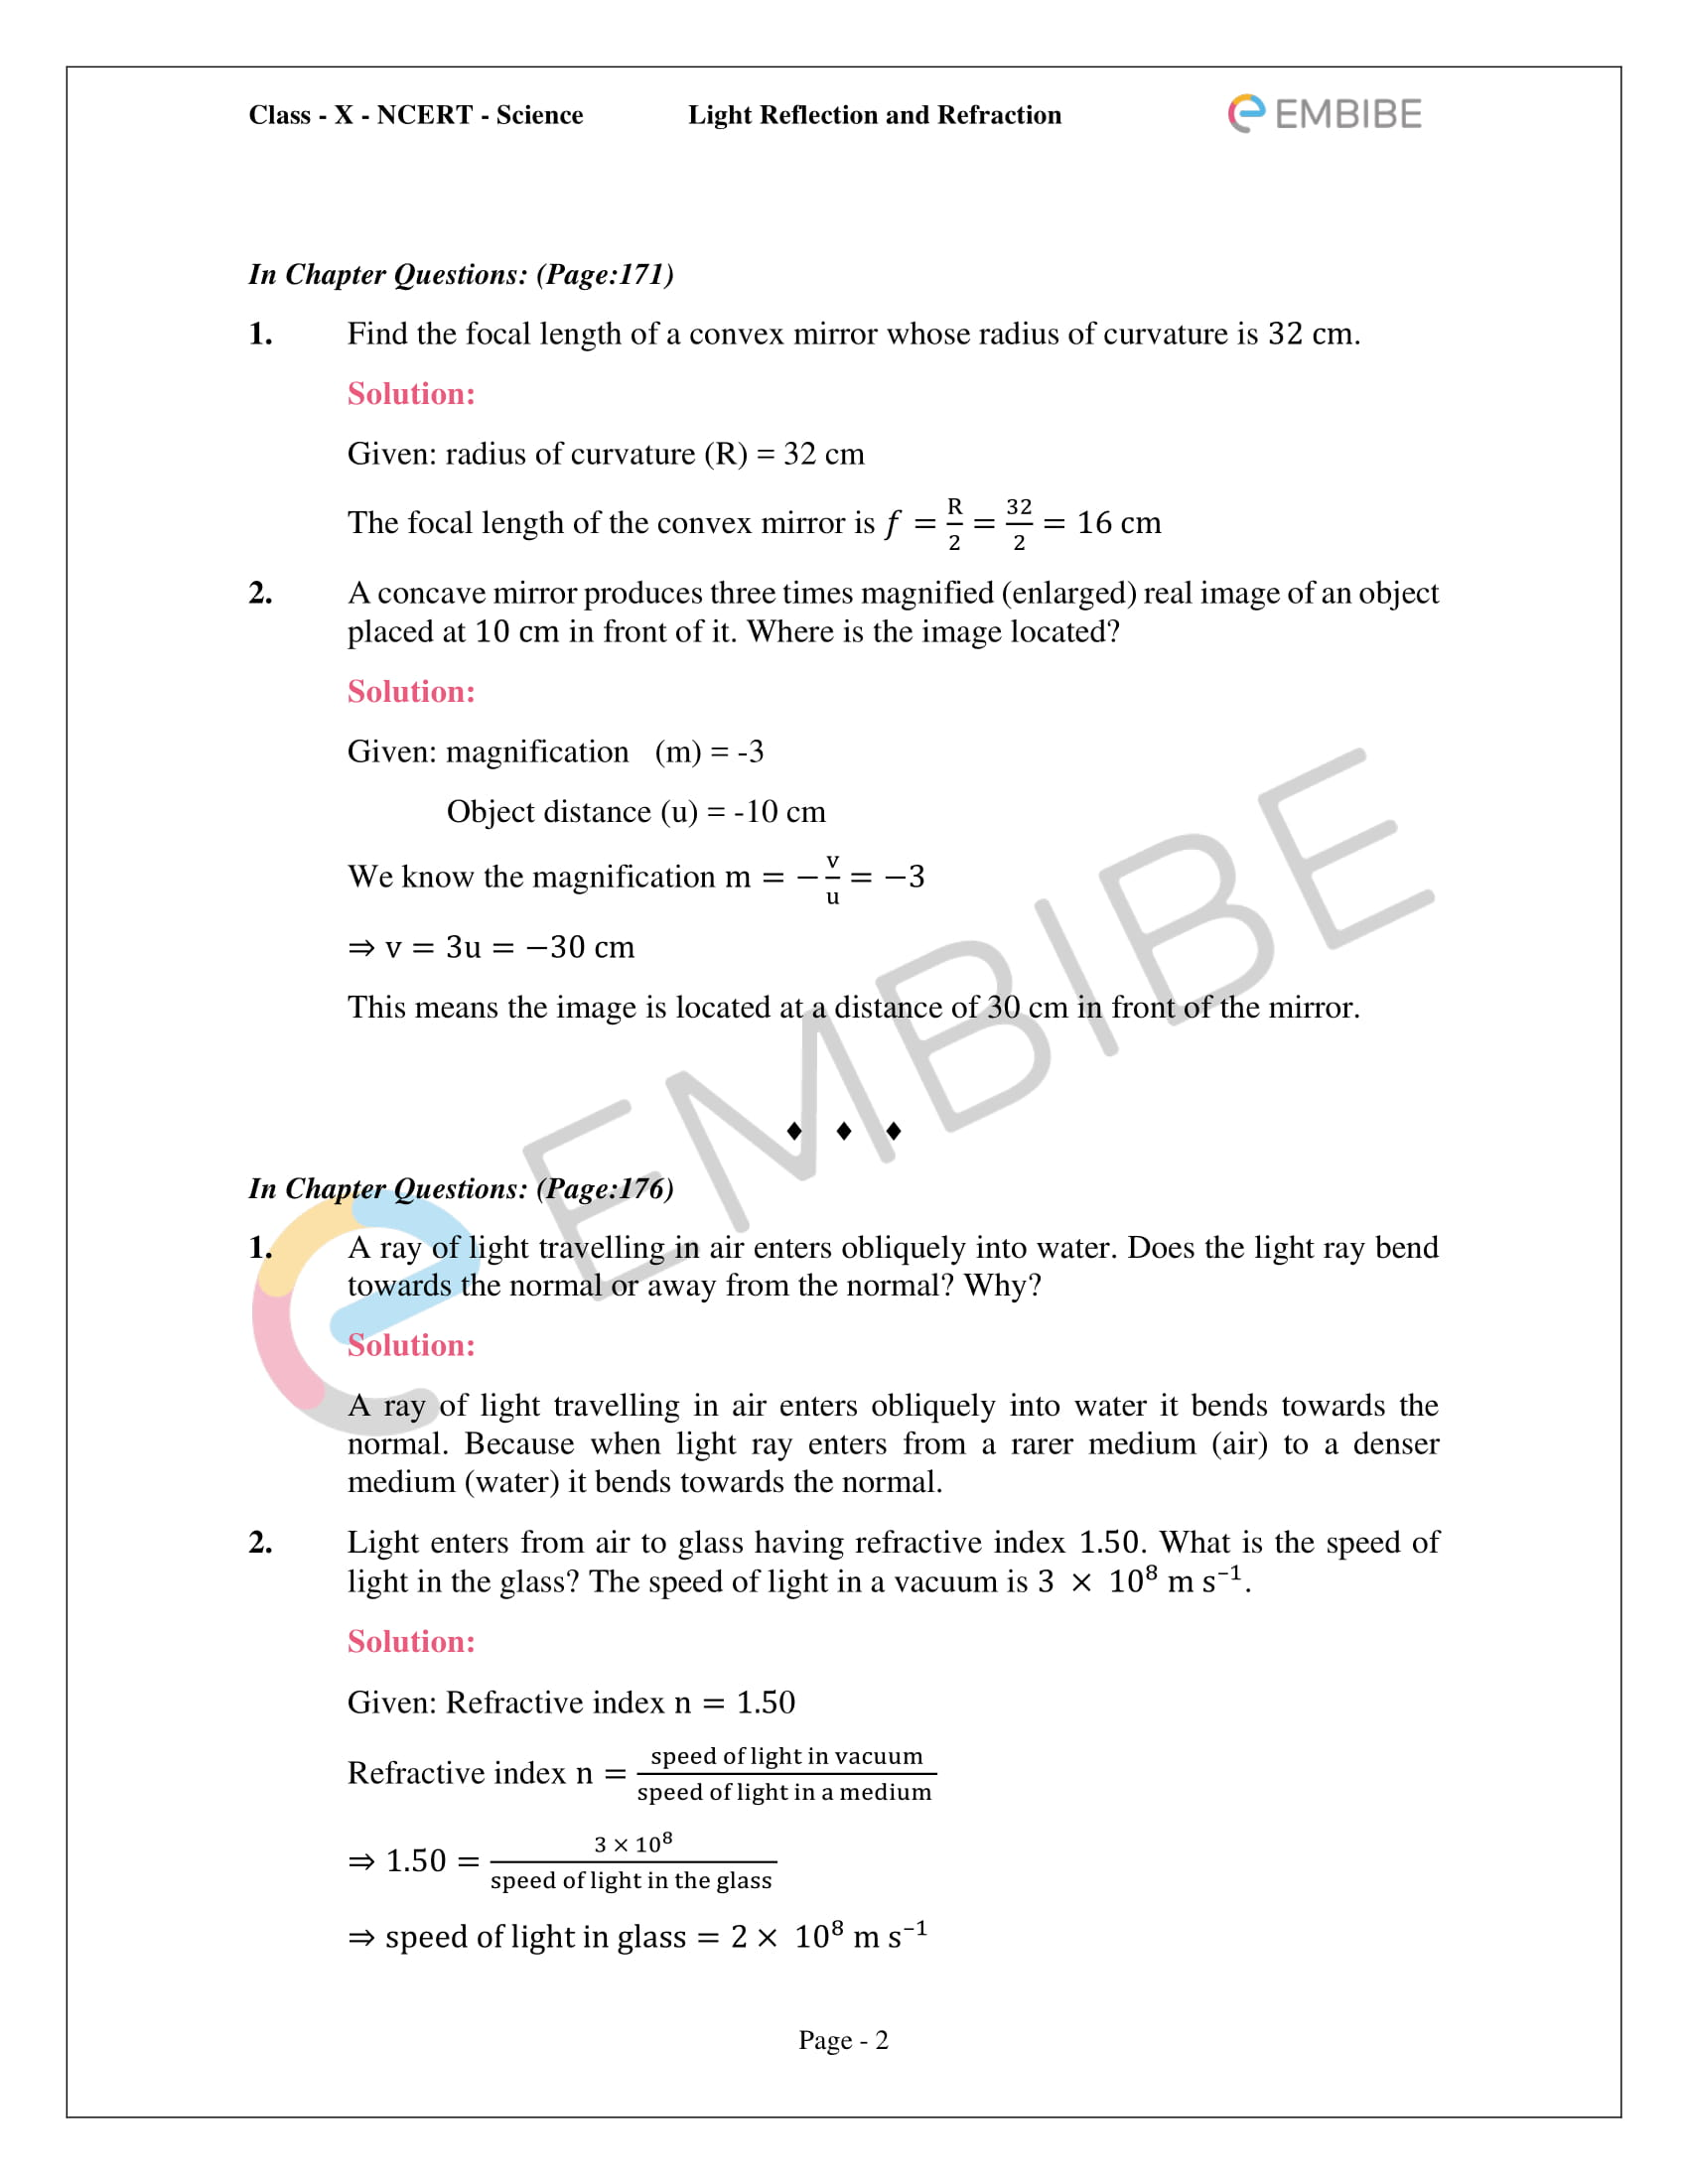 CBSE NCERT Solutions For Class 10 Science Chapter 10 - Light Reflection and Refraction - 2